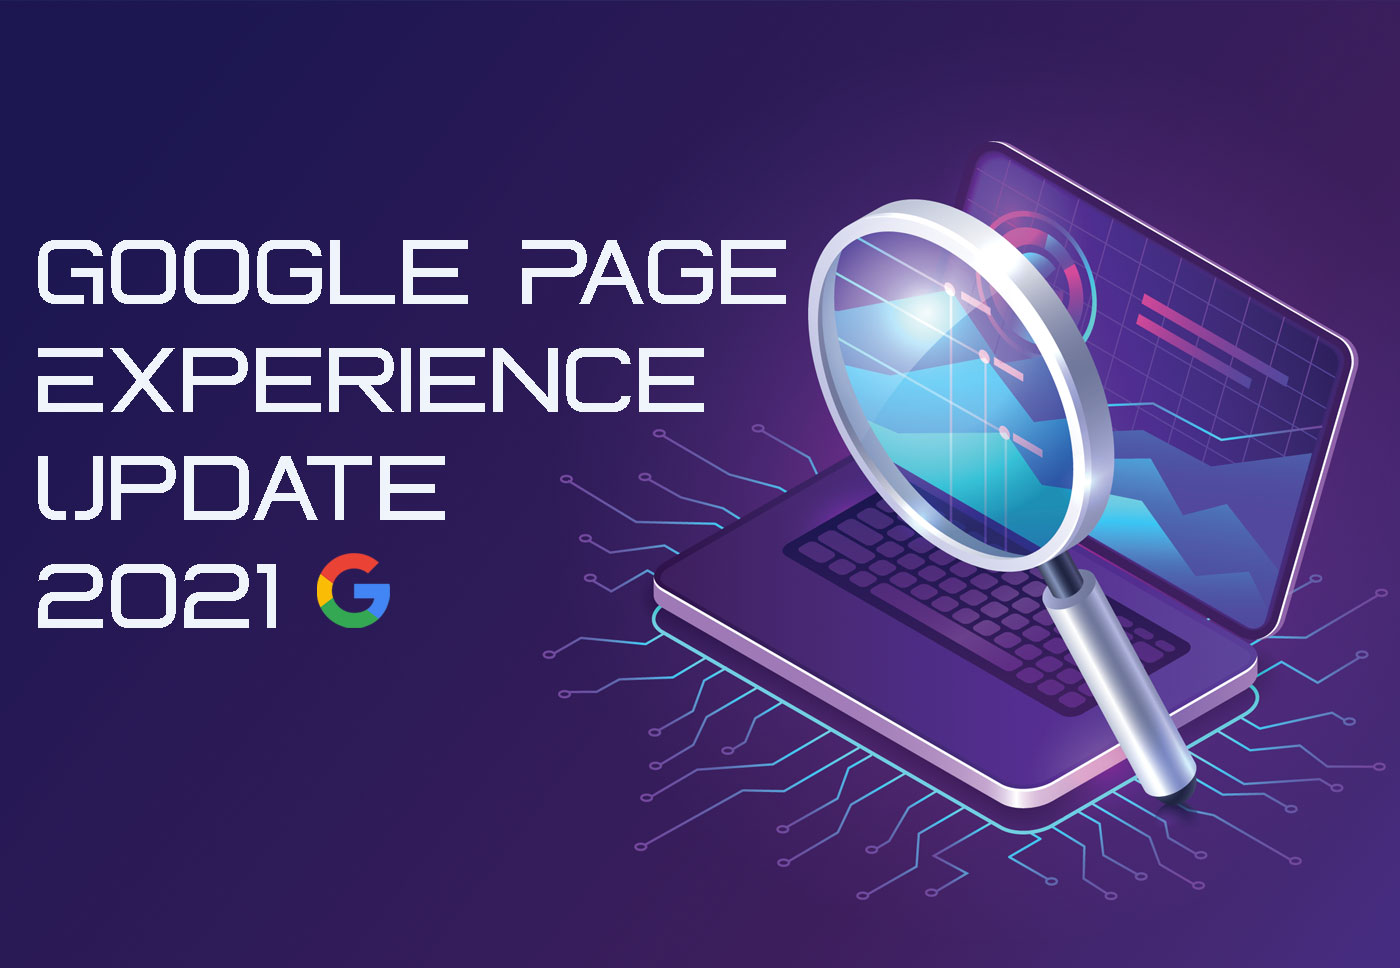 google-page-experience-update-2021